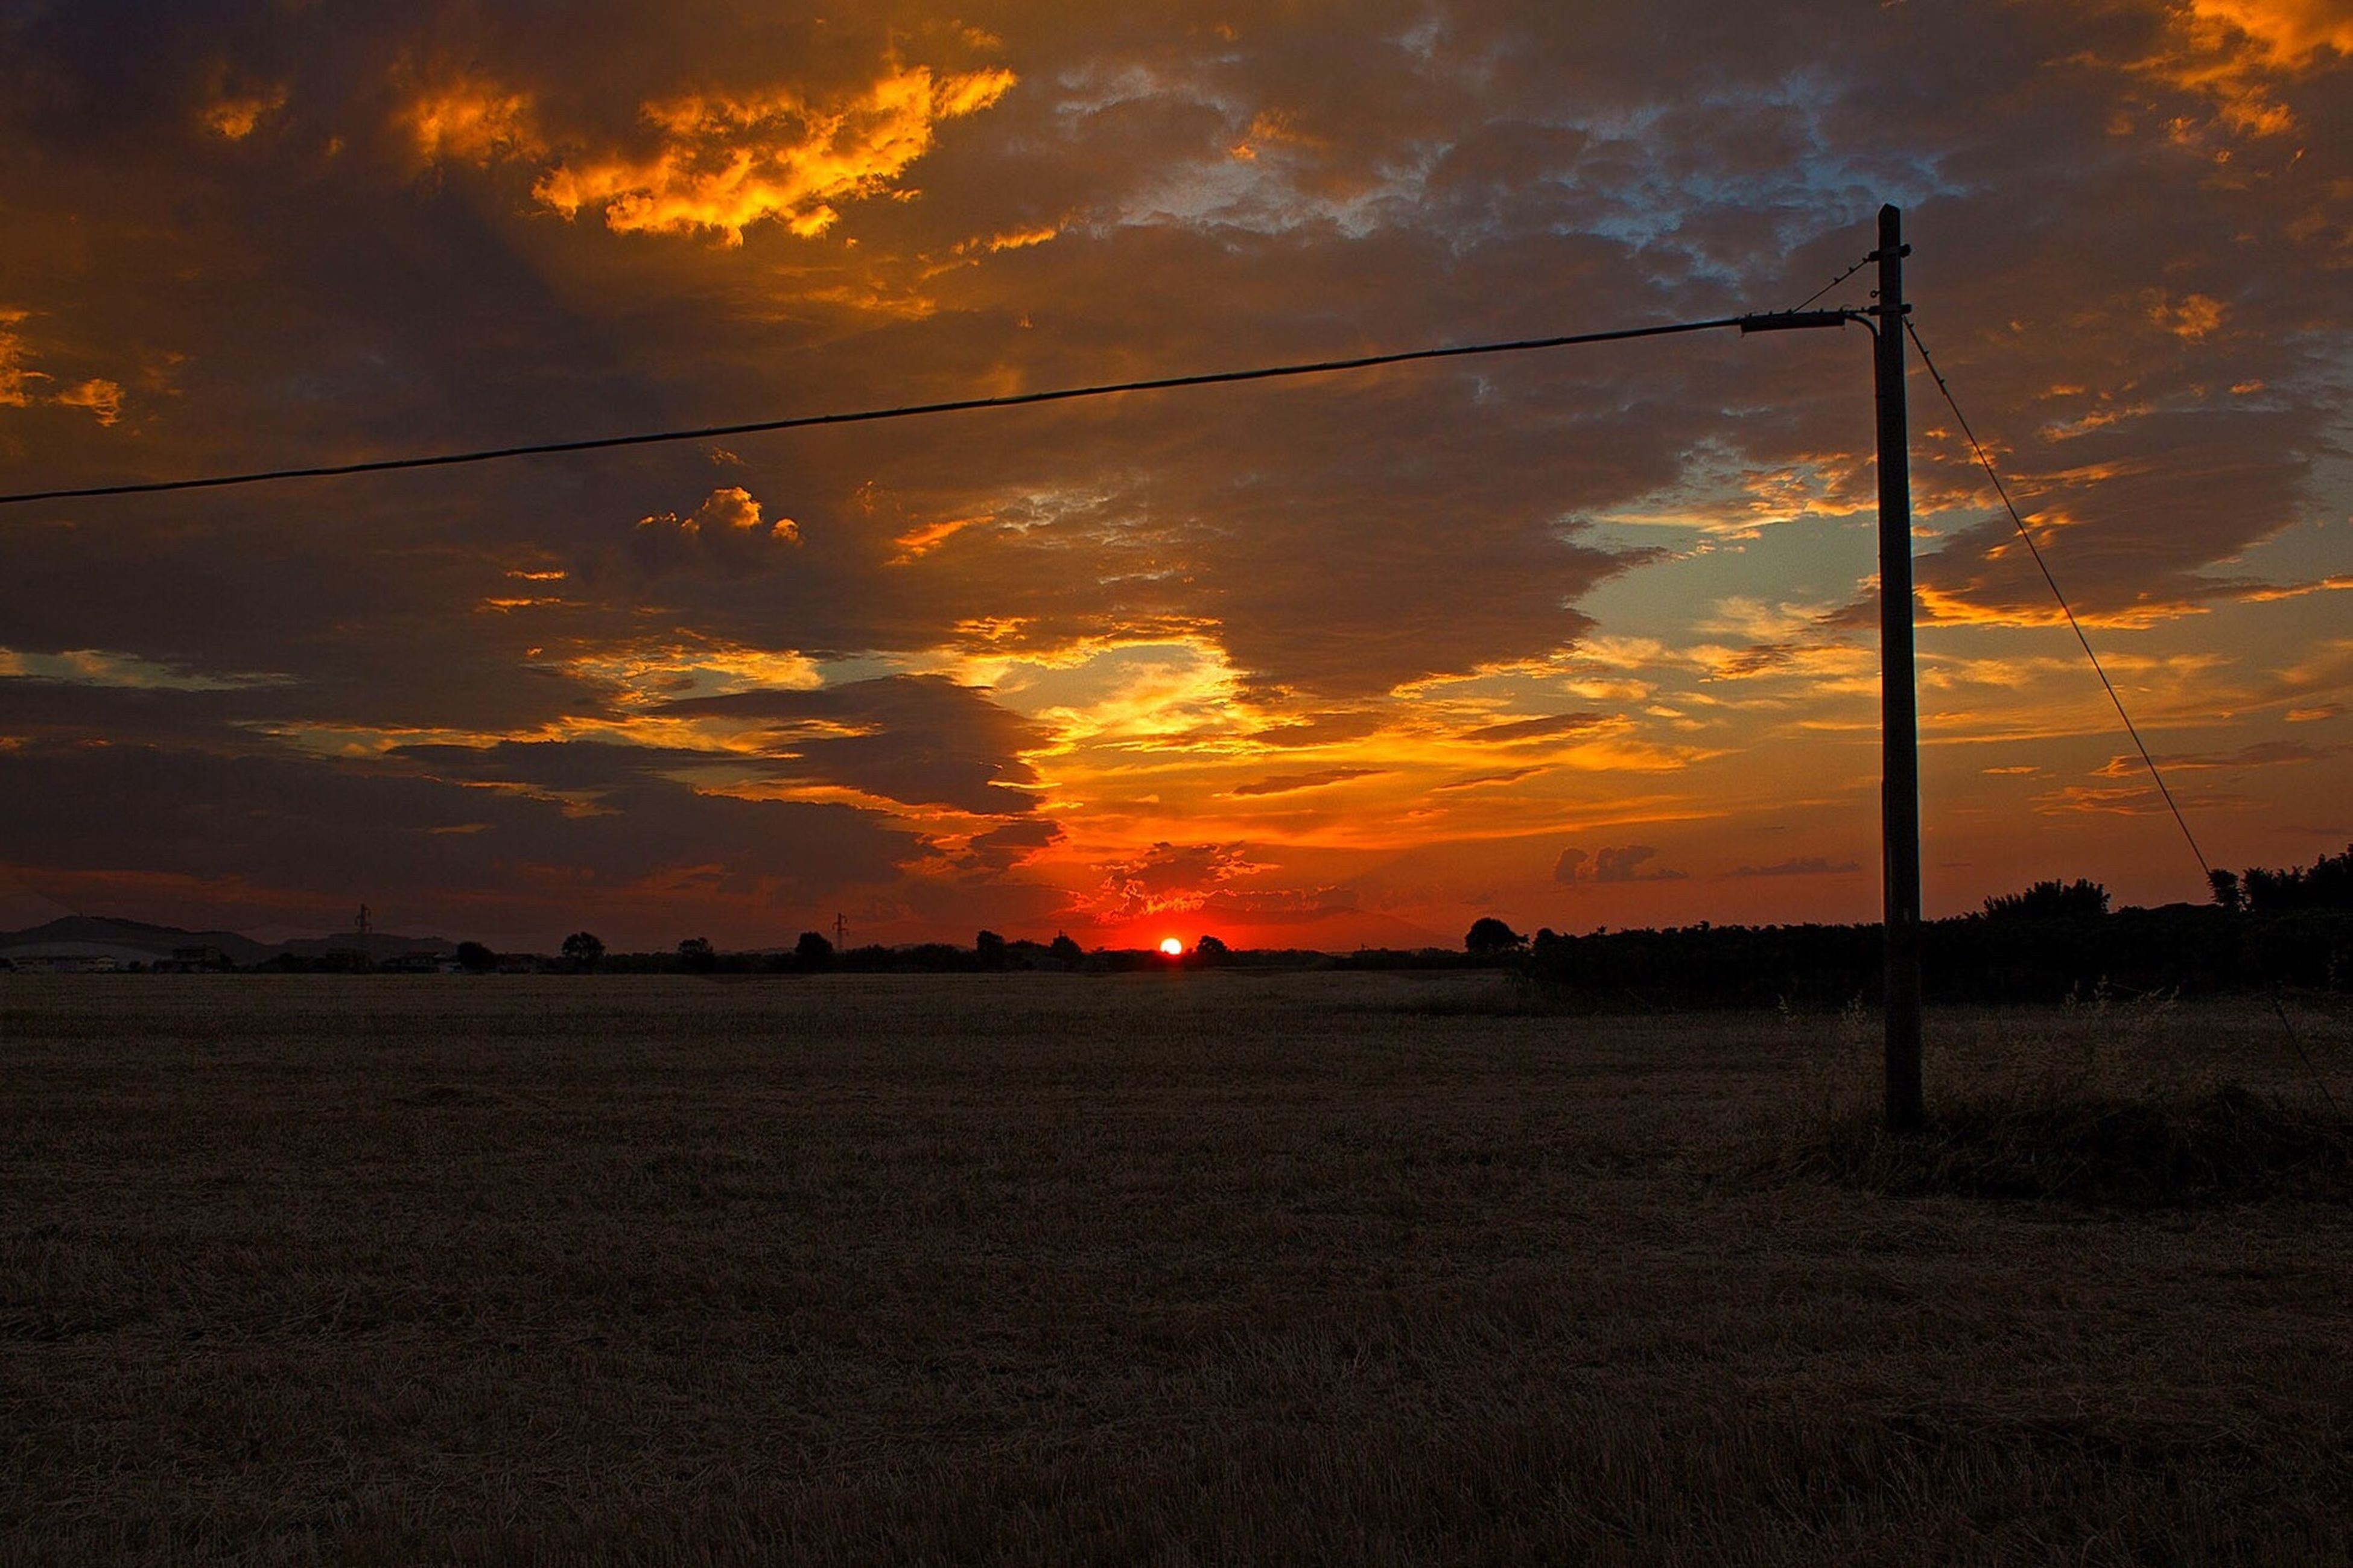 sunset, field, sky, nature, cloud - sky, orange color, beauty in nature, scenics, tranquility, landscape, no people, tranquil scene, silhouette, cable, outdoors, agriculture, rural scene, tree, grass, day